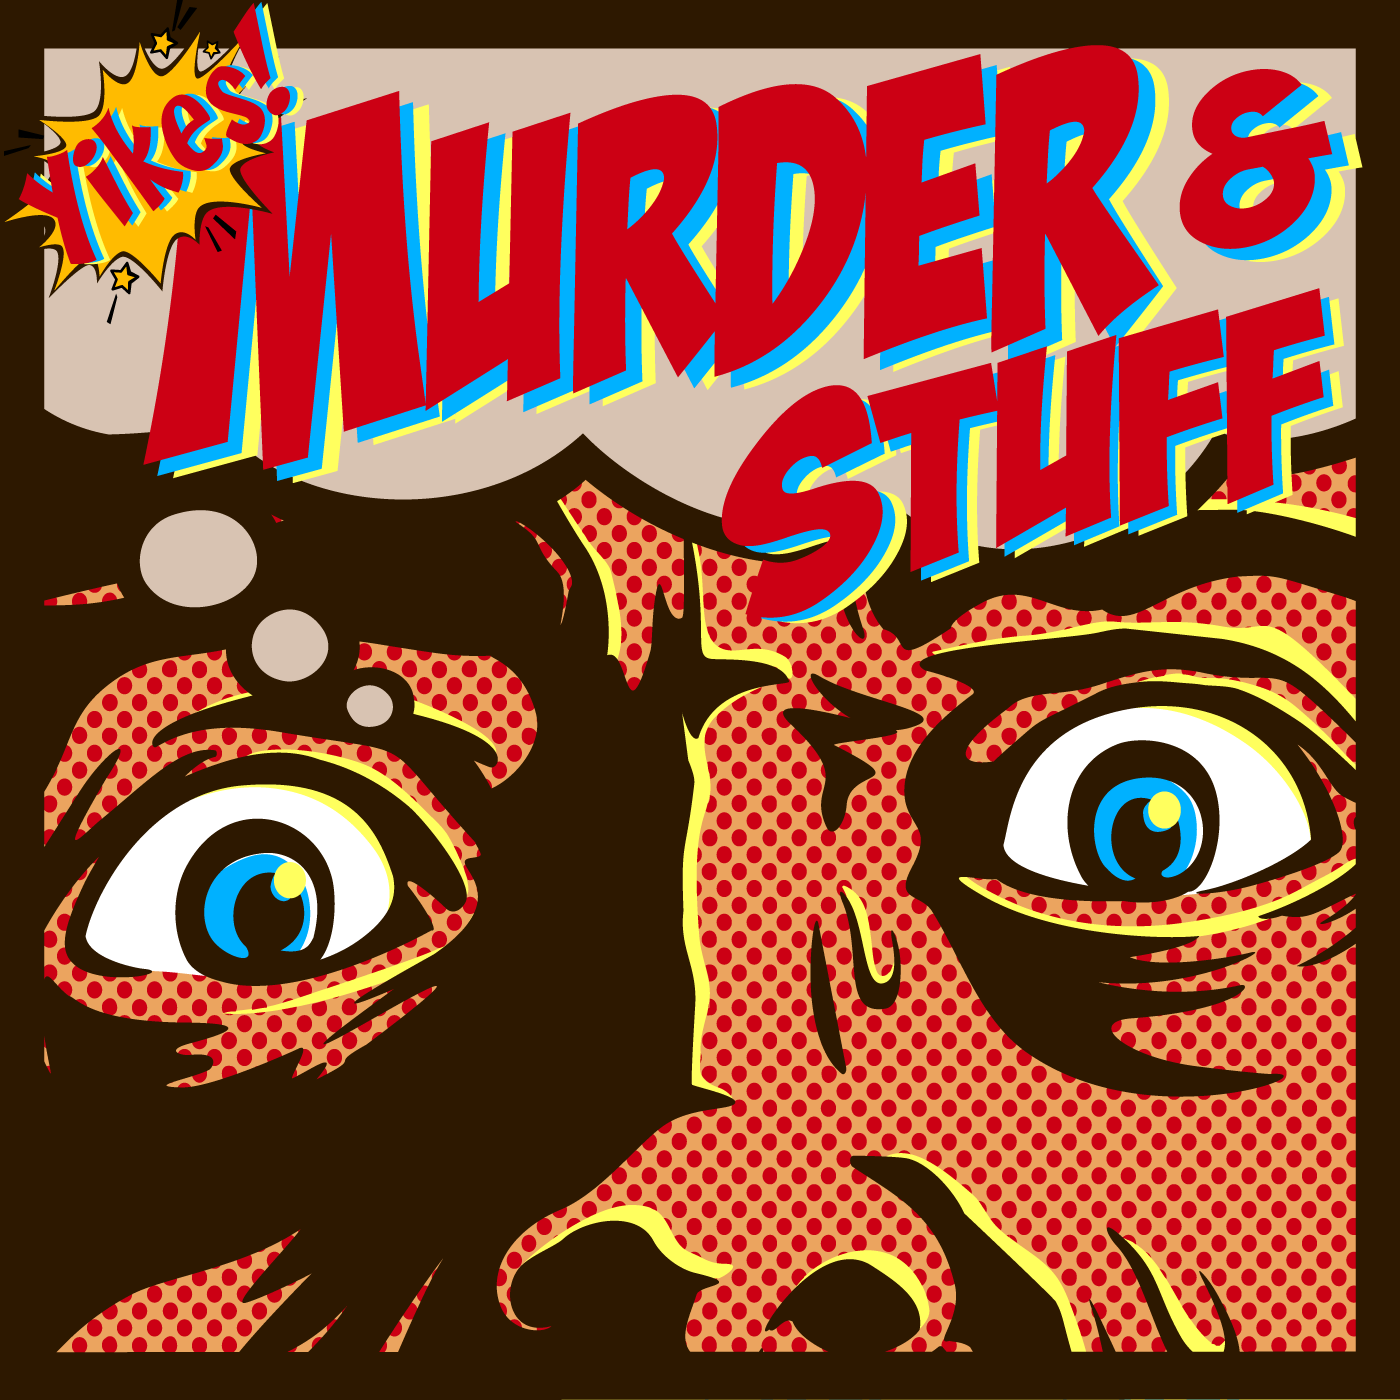 Yikes! Murder and Stuff! A True Crime Podcast show art